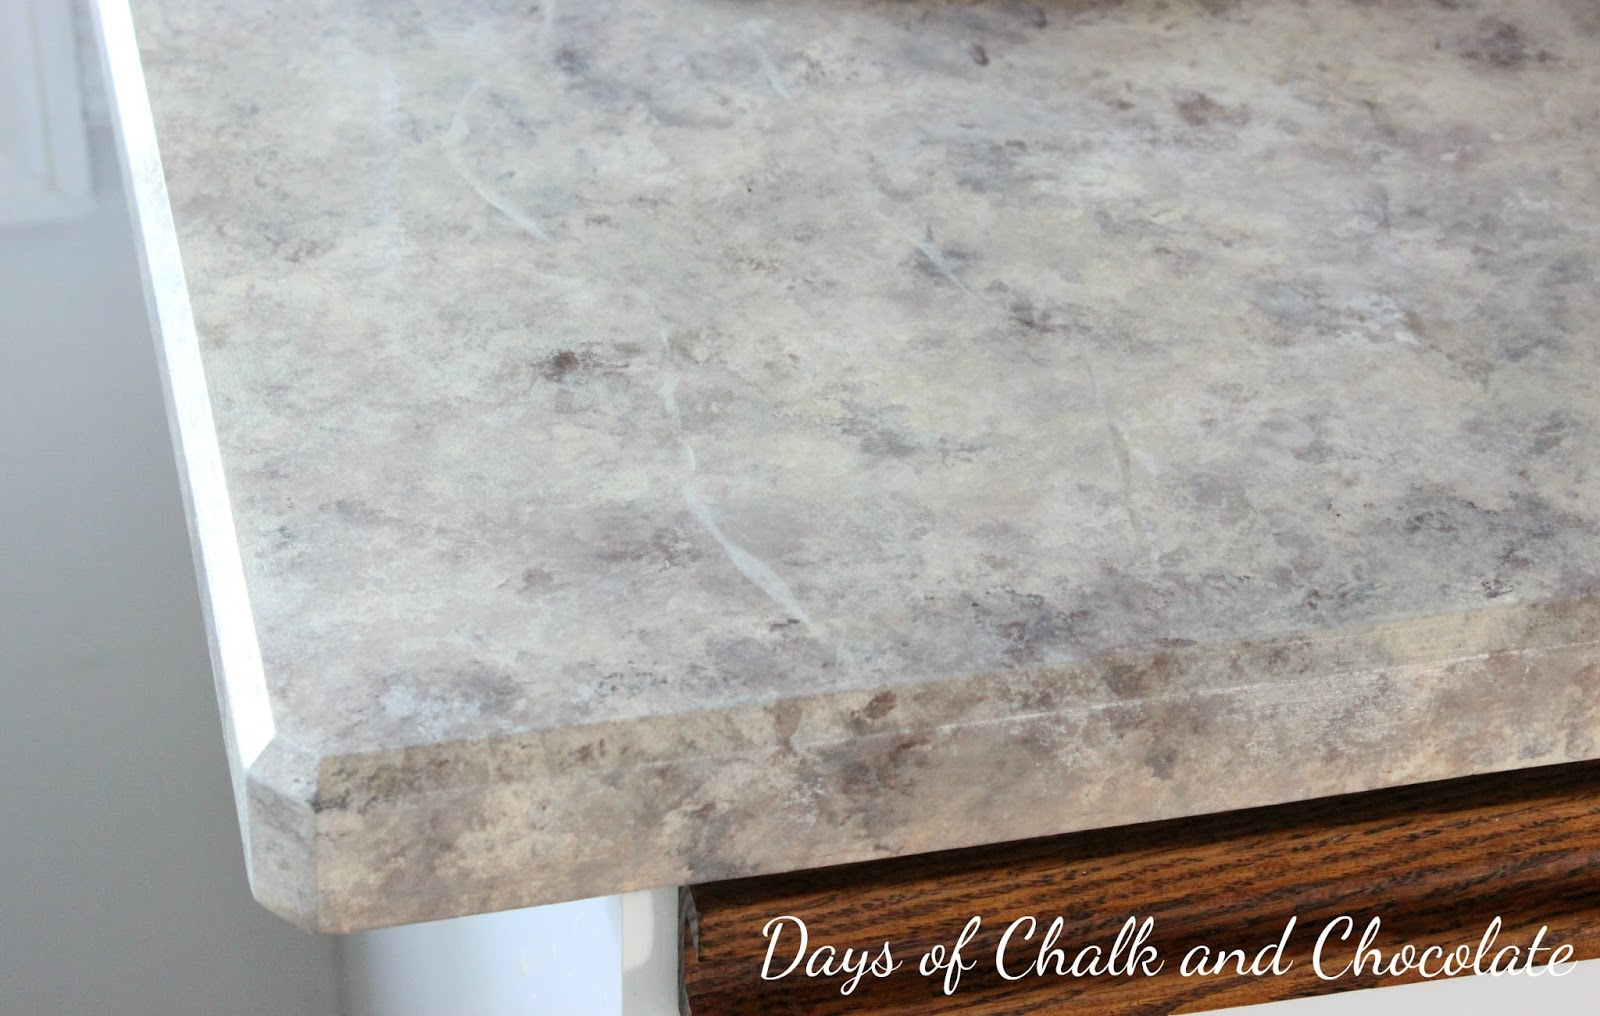 Epoxy Over Laminate Countertops Painted Faux Stone Countertops | Days Of Chalk And Chocolate